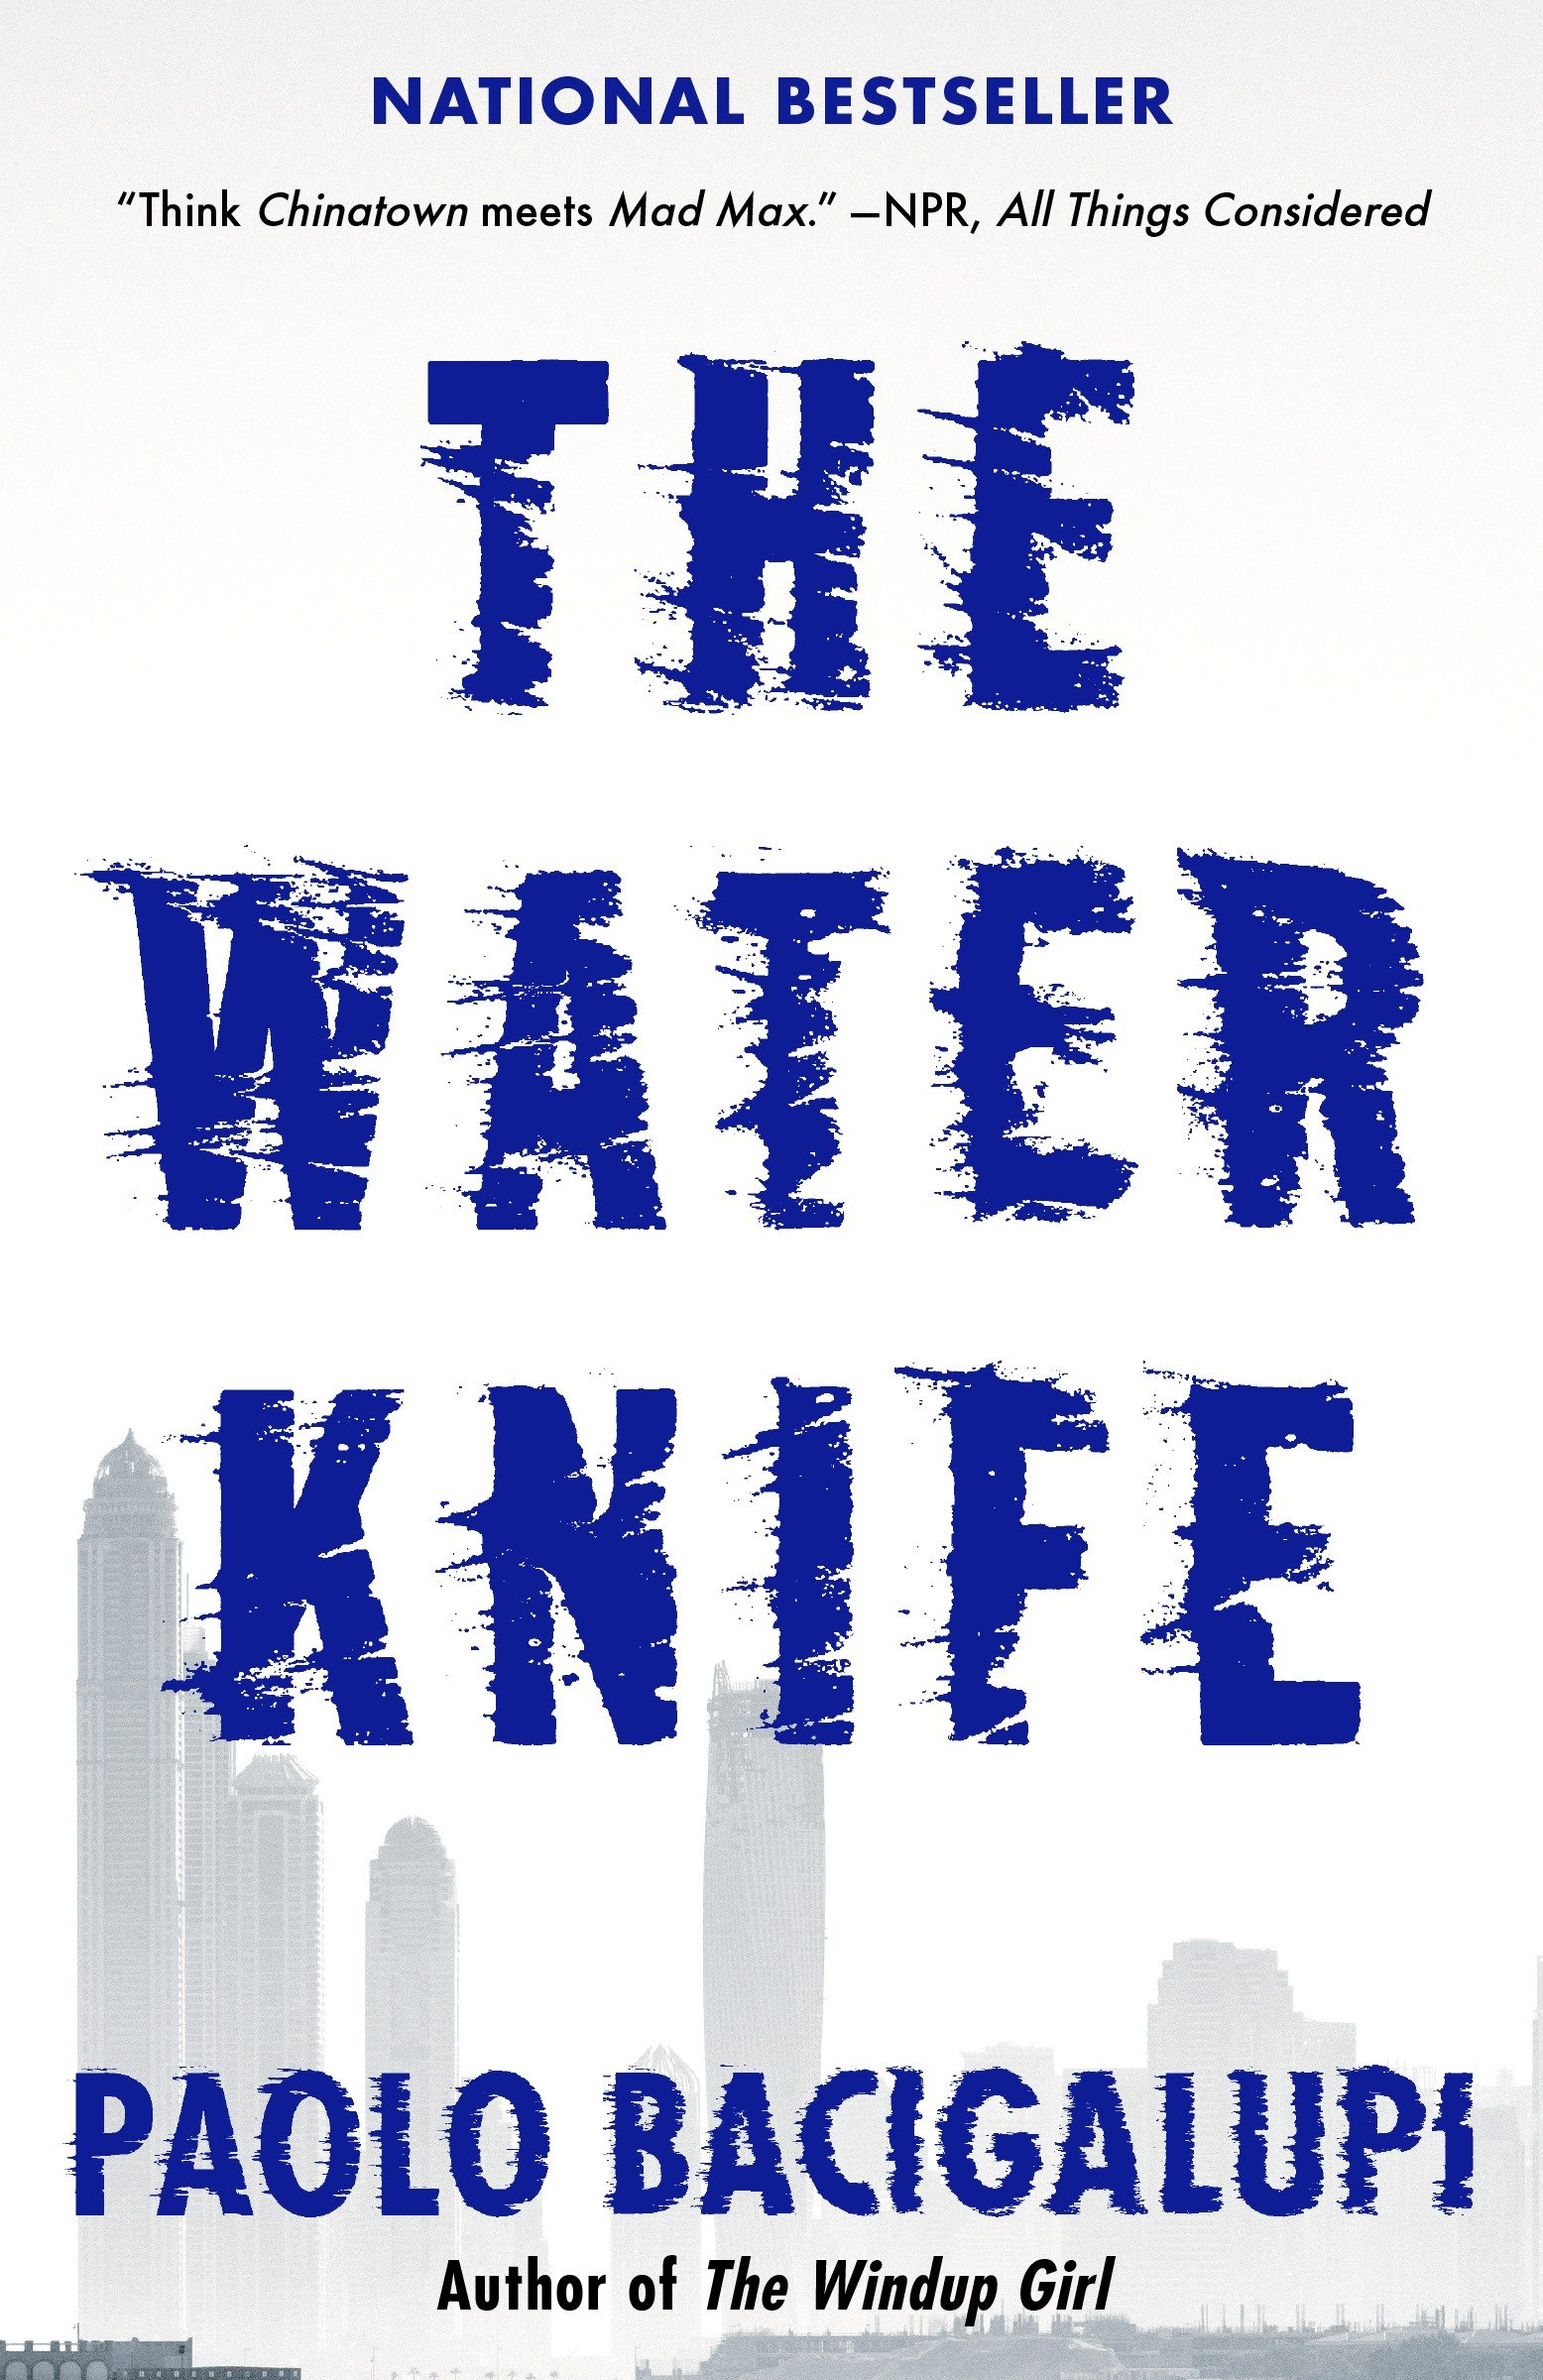 The water knife cover image